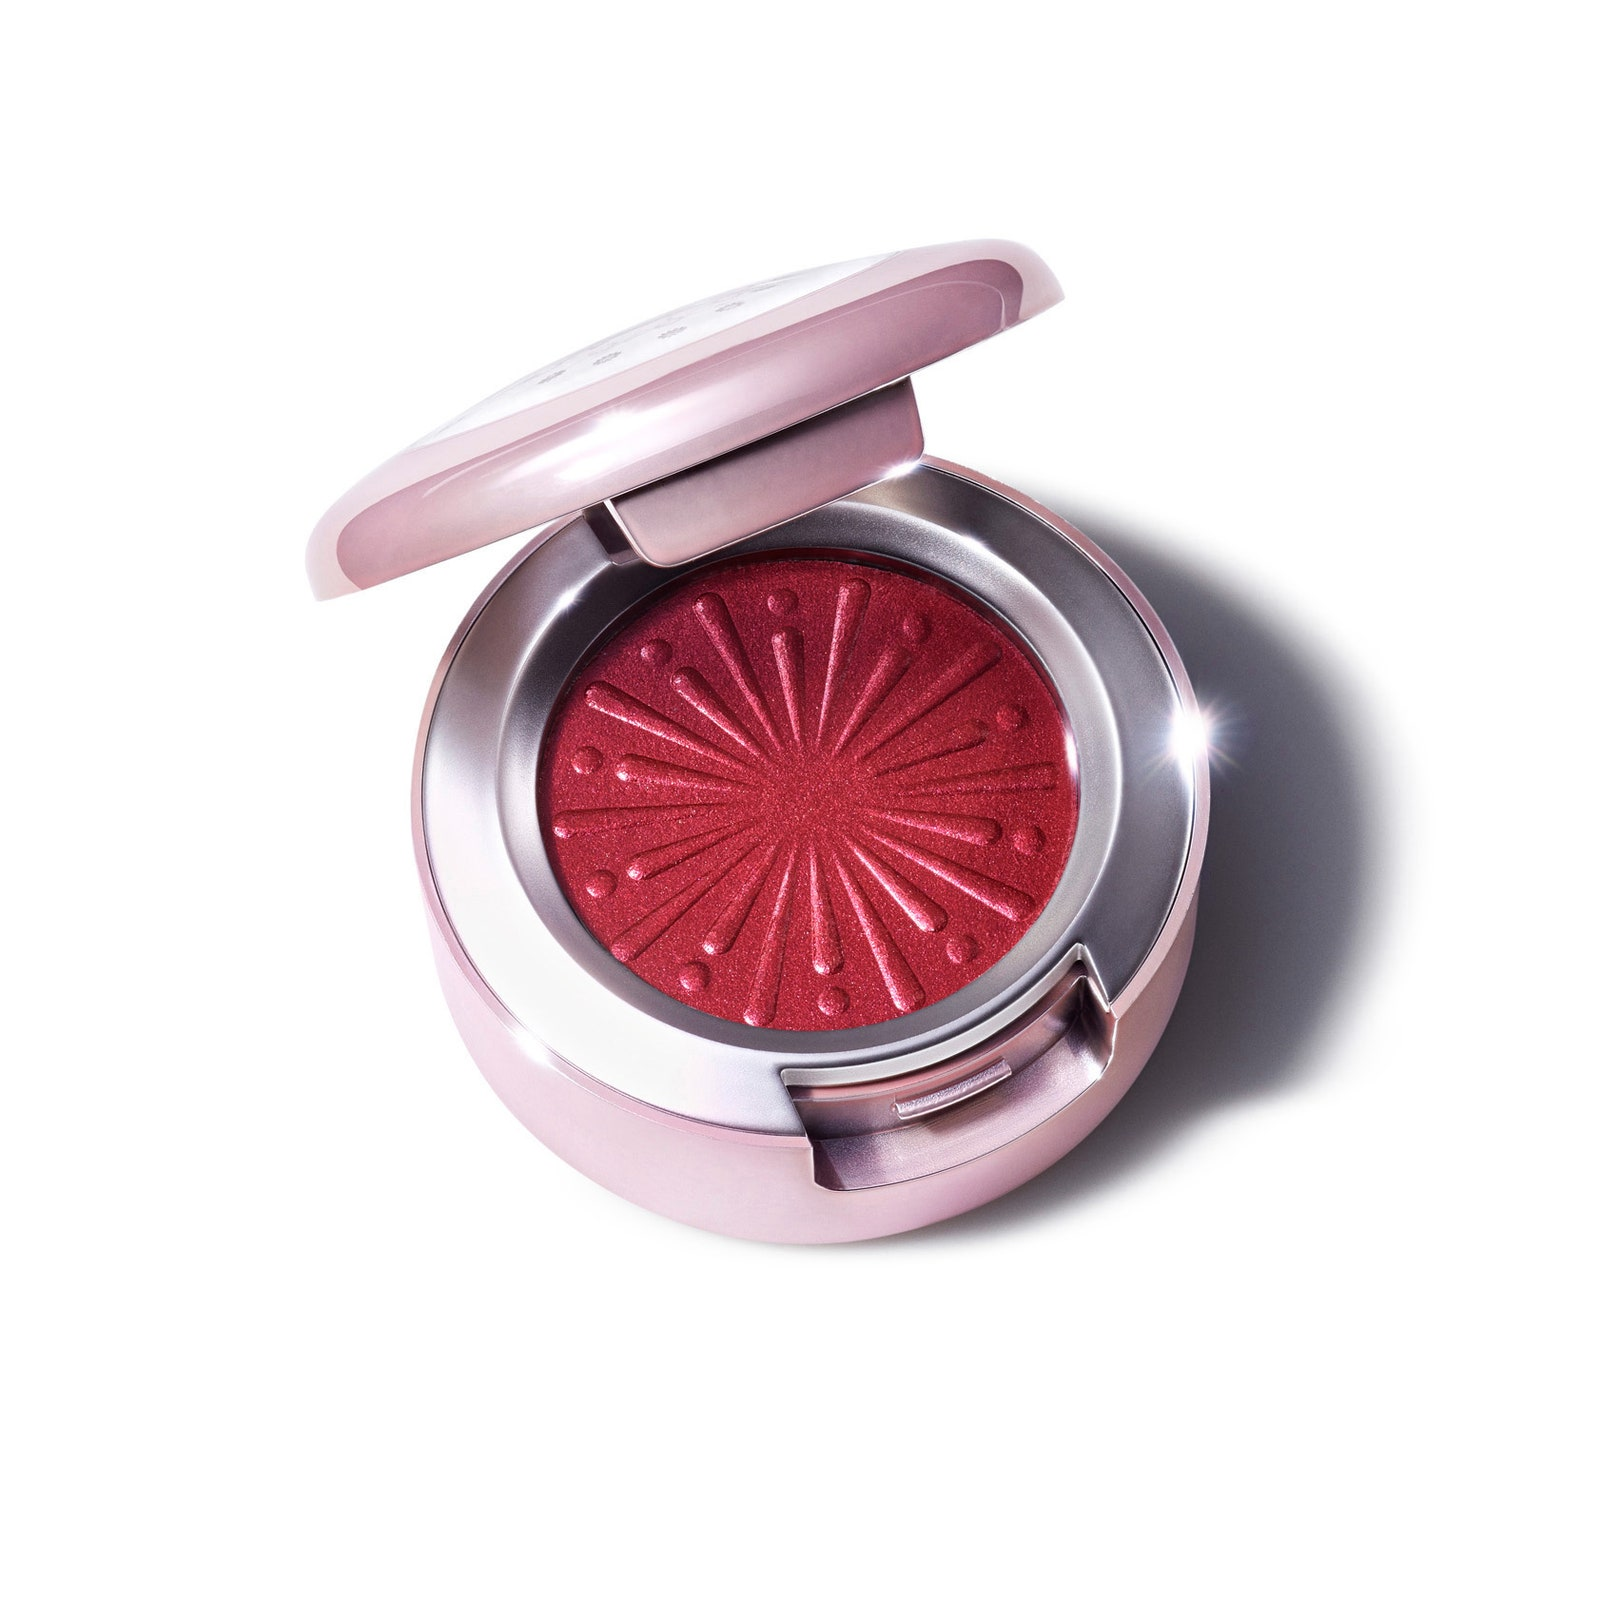 MAC Cosmetics Frosted Fireworks Extra Dimension